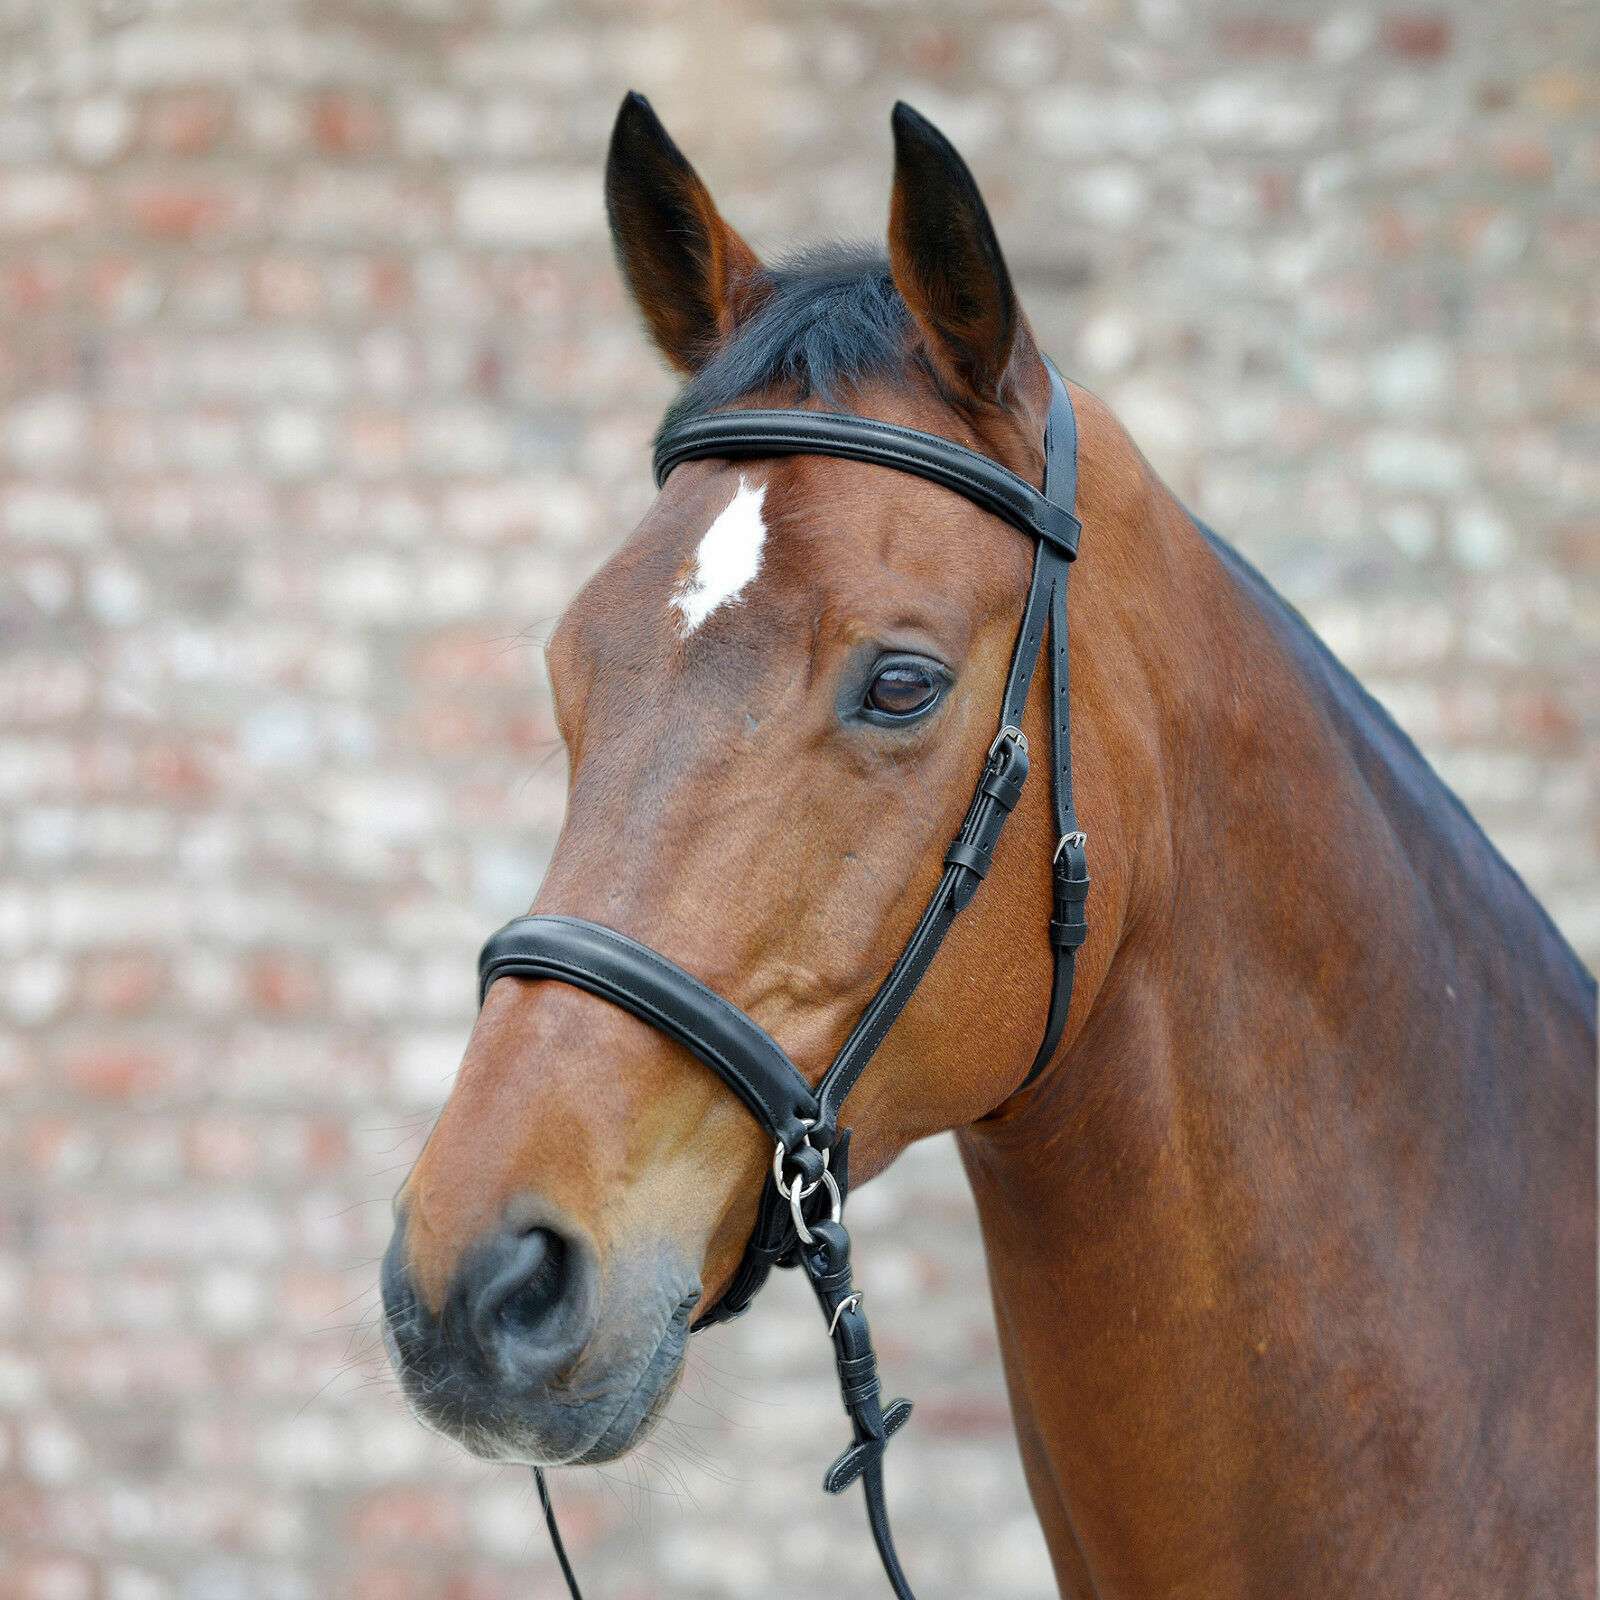 Bitless Bridle Star Bridle without Mouthpiece Leather Complete Reins